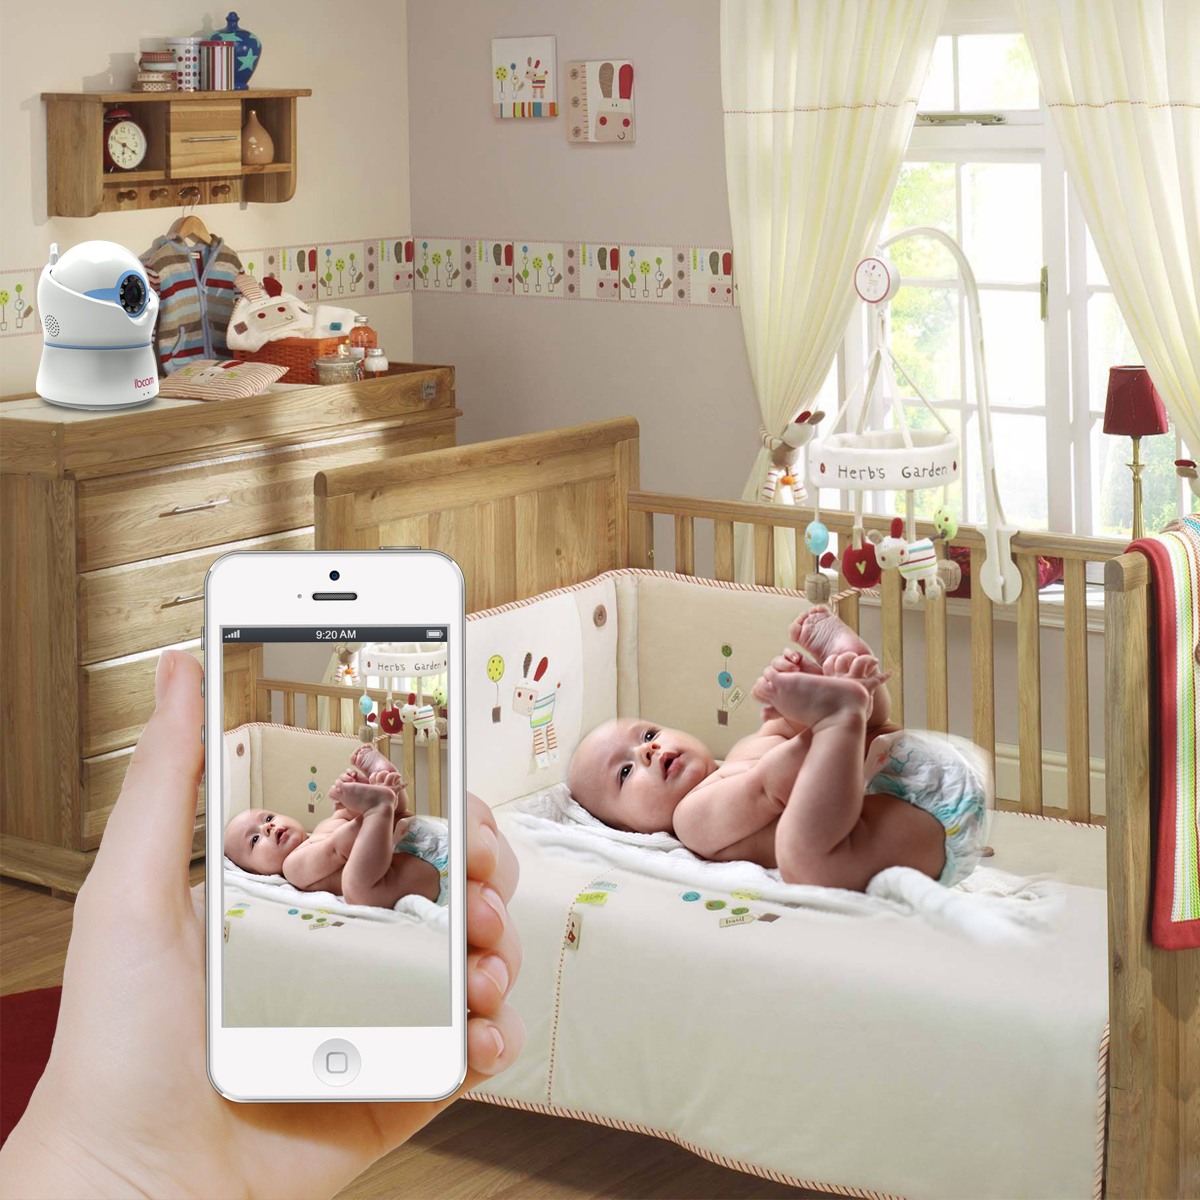 Sumpple com - WiFi Video Camera, Baby Monitor for iPhone